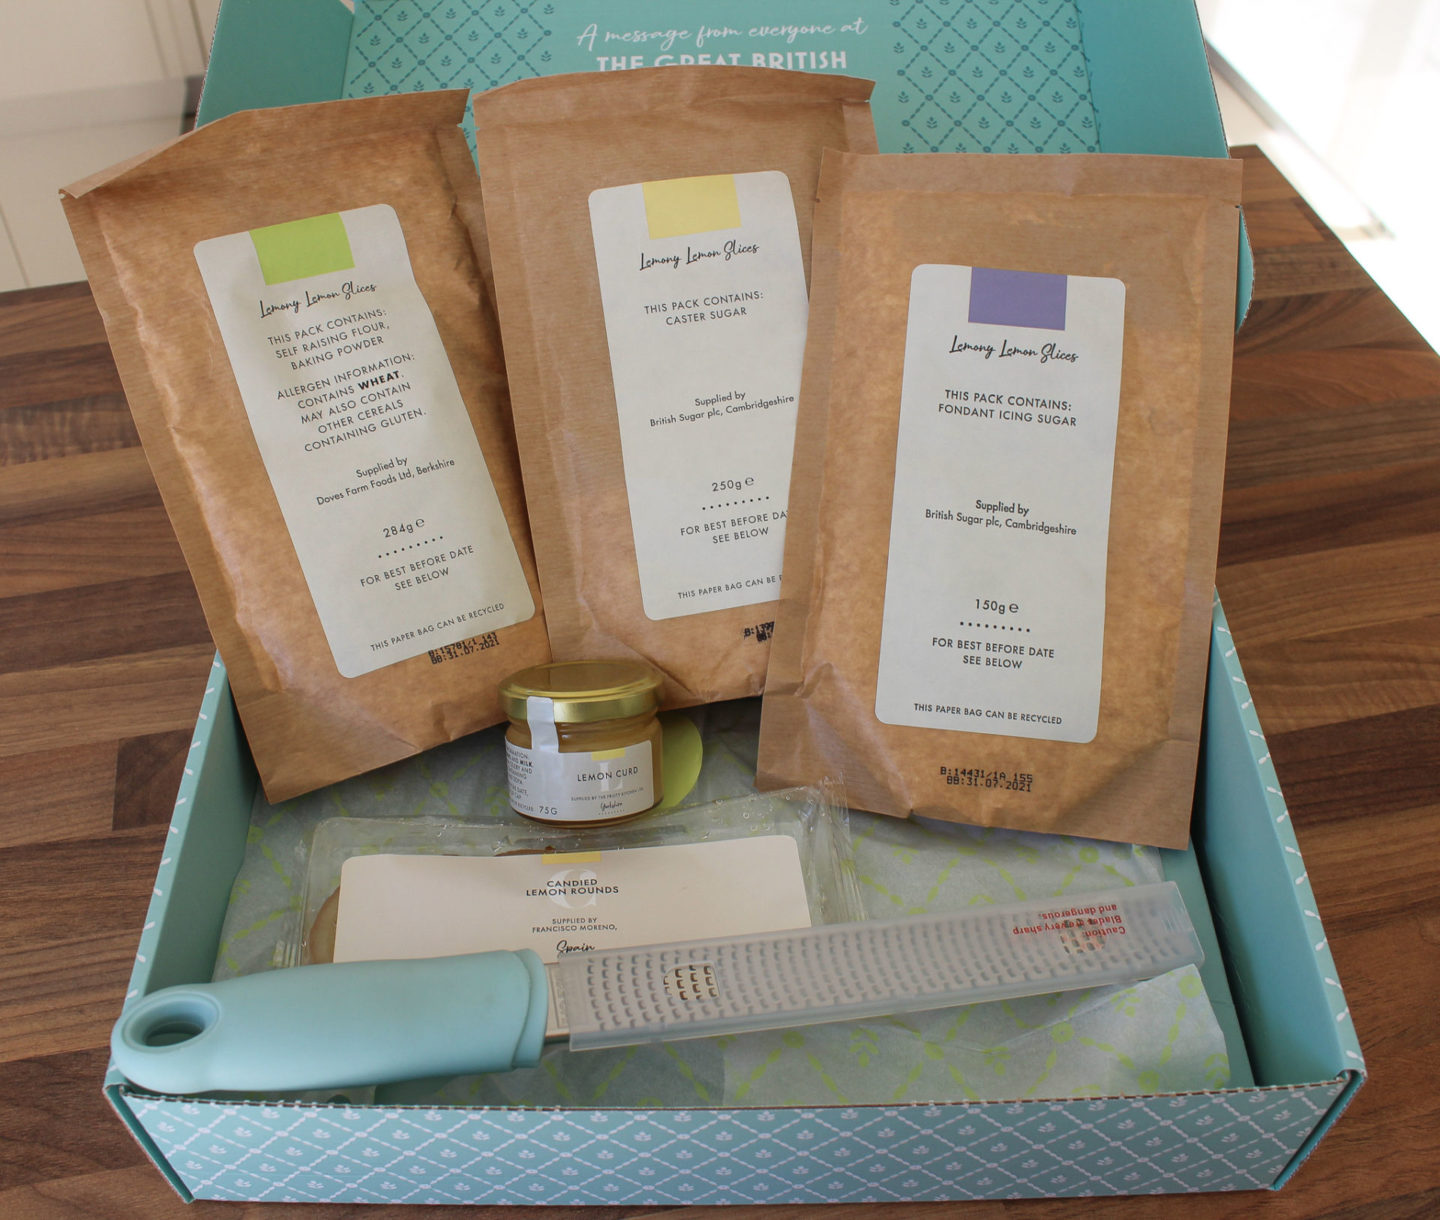 Image showing dry ingredients and other contents found inside the bake off box: lemony lemon slices